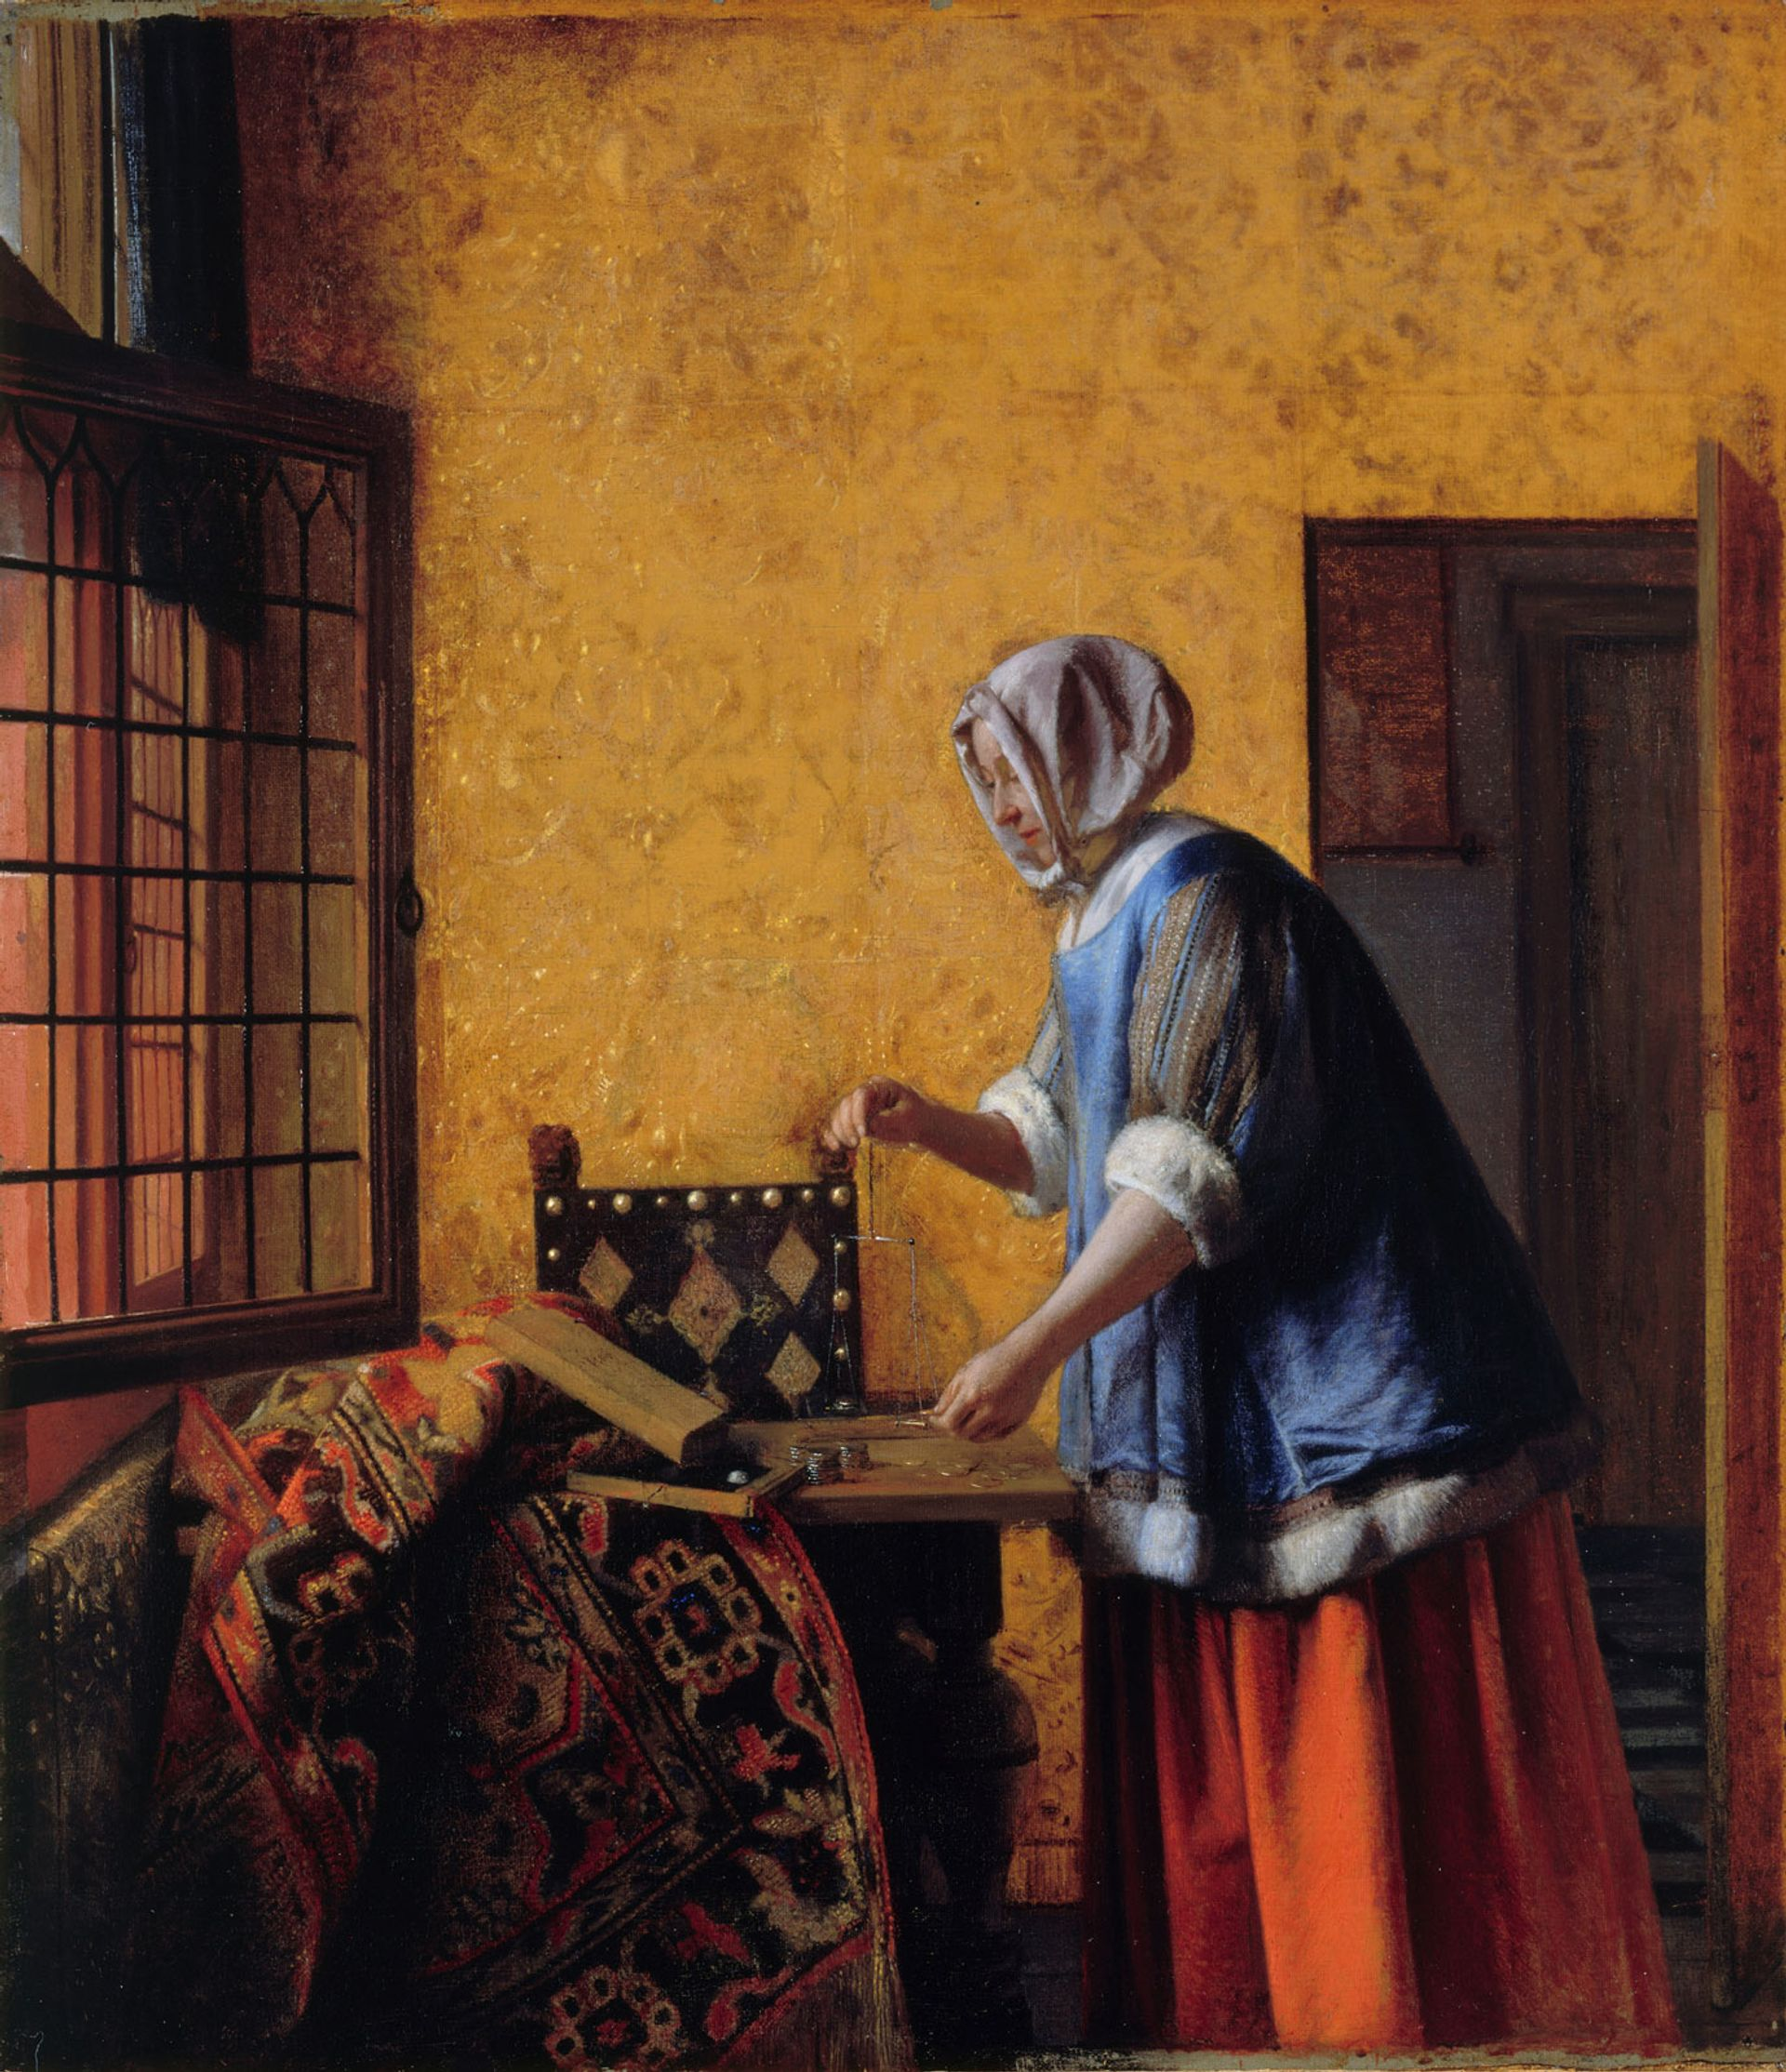 Pieter de Hooch's signature is thought to have been discovered in the painting Woman weighing gold and silver Coins (around 1664) Gemäldegalerie Staatliche Museen zu Berlin